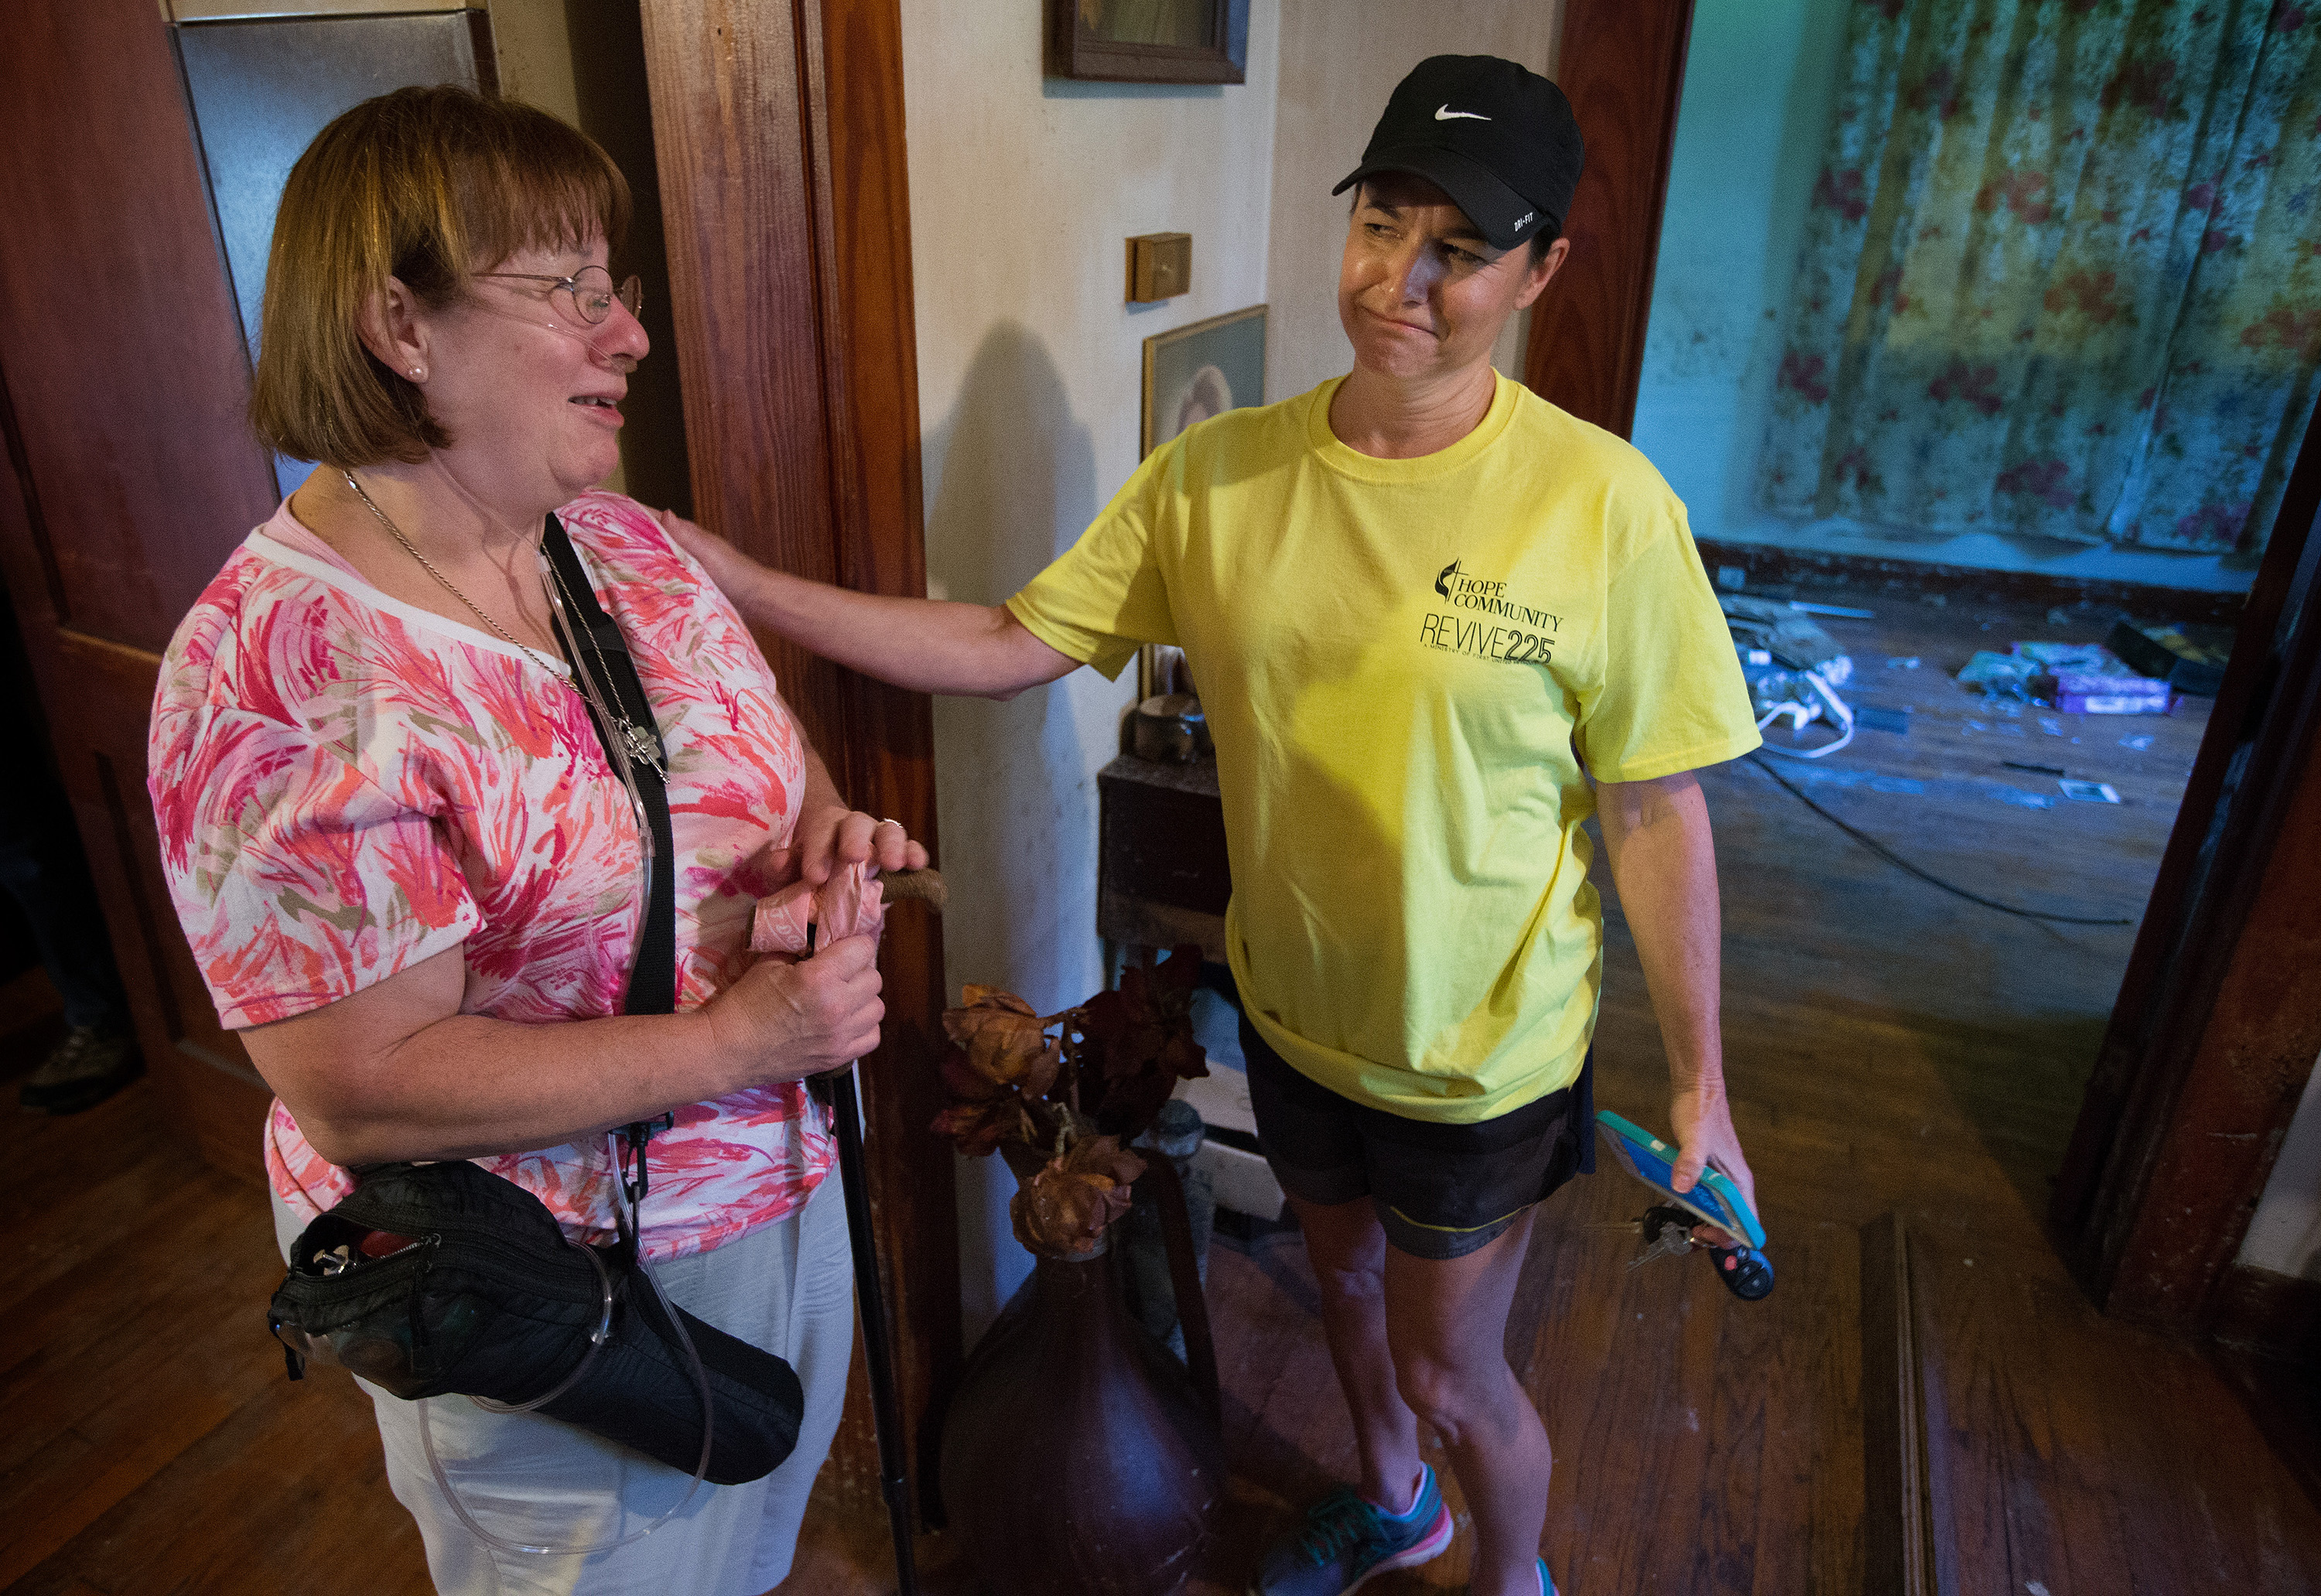 Janet Schilling (left) visits with volunteer Joni Rigby at a rental home that her family owns in Baton Rouge, La. The home was heavily damaged by flooding in the neighborhood where Schilling grew up. Rigby was part of a volunteer team from First United Methodist Church in Baton Rouge. Photo by Mike DuBose, UMNS